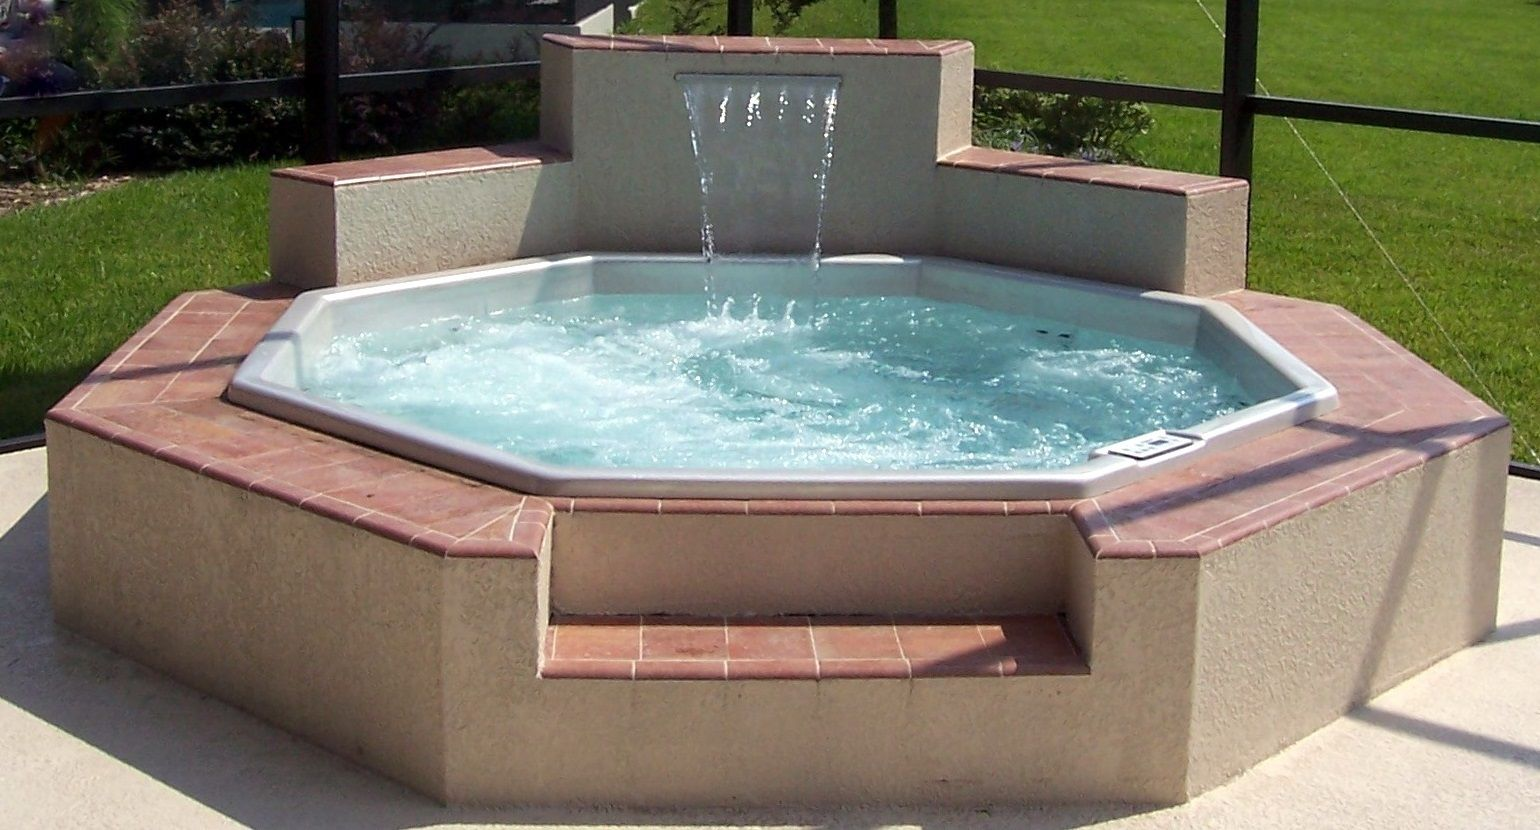 Custom Spa Hot Tub Installation In Ground Spa Inground Hot Tub Hot Tub